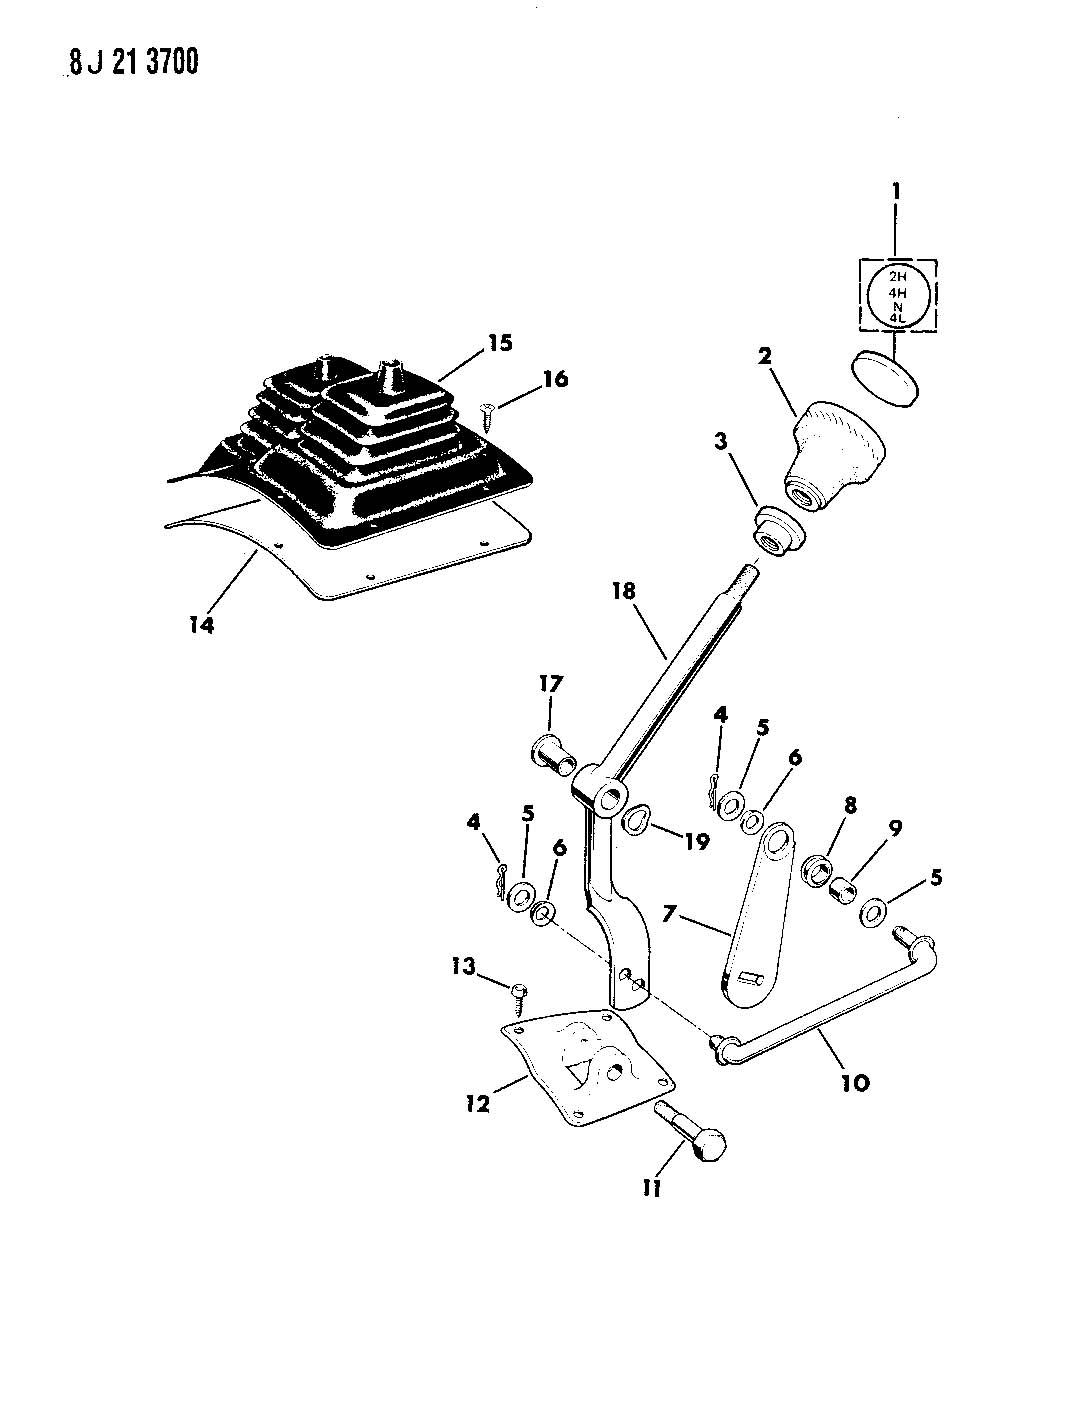 ShowAssembly in addition P 0900c1528007c2ad besides Steering Column Assembly Scat furthermore Chevy Np203 Transfer Case in addition Tachograph. on manual shift vehicles